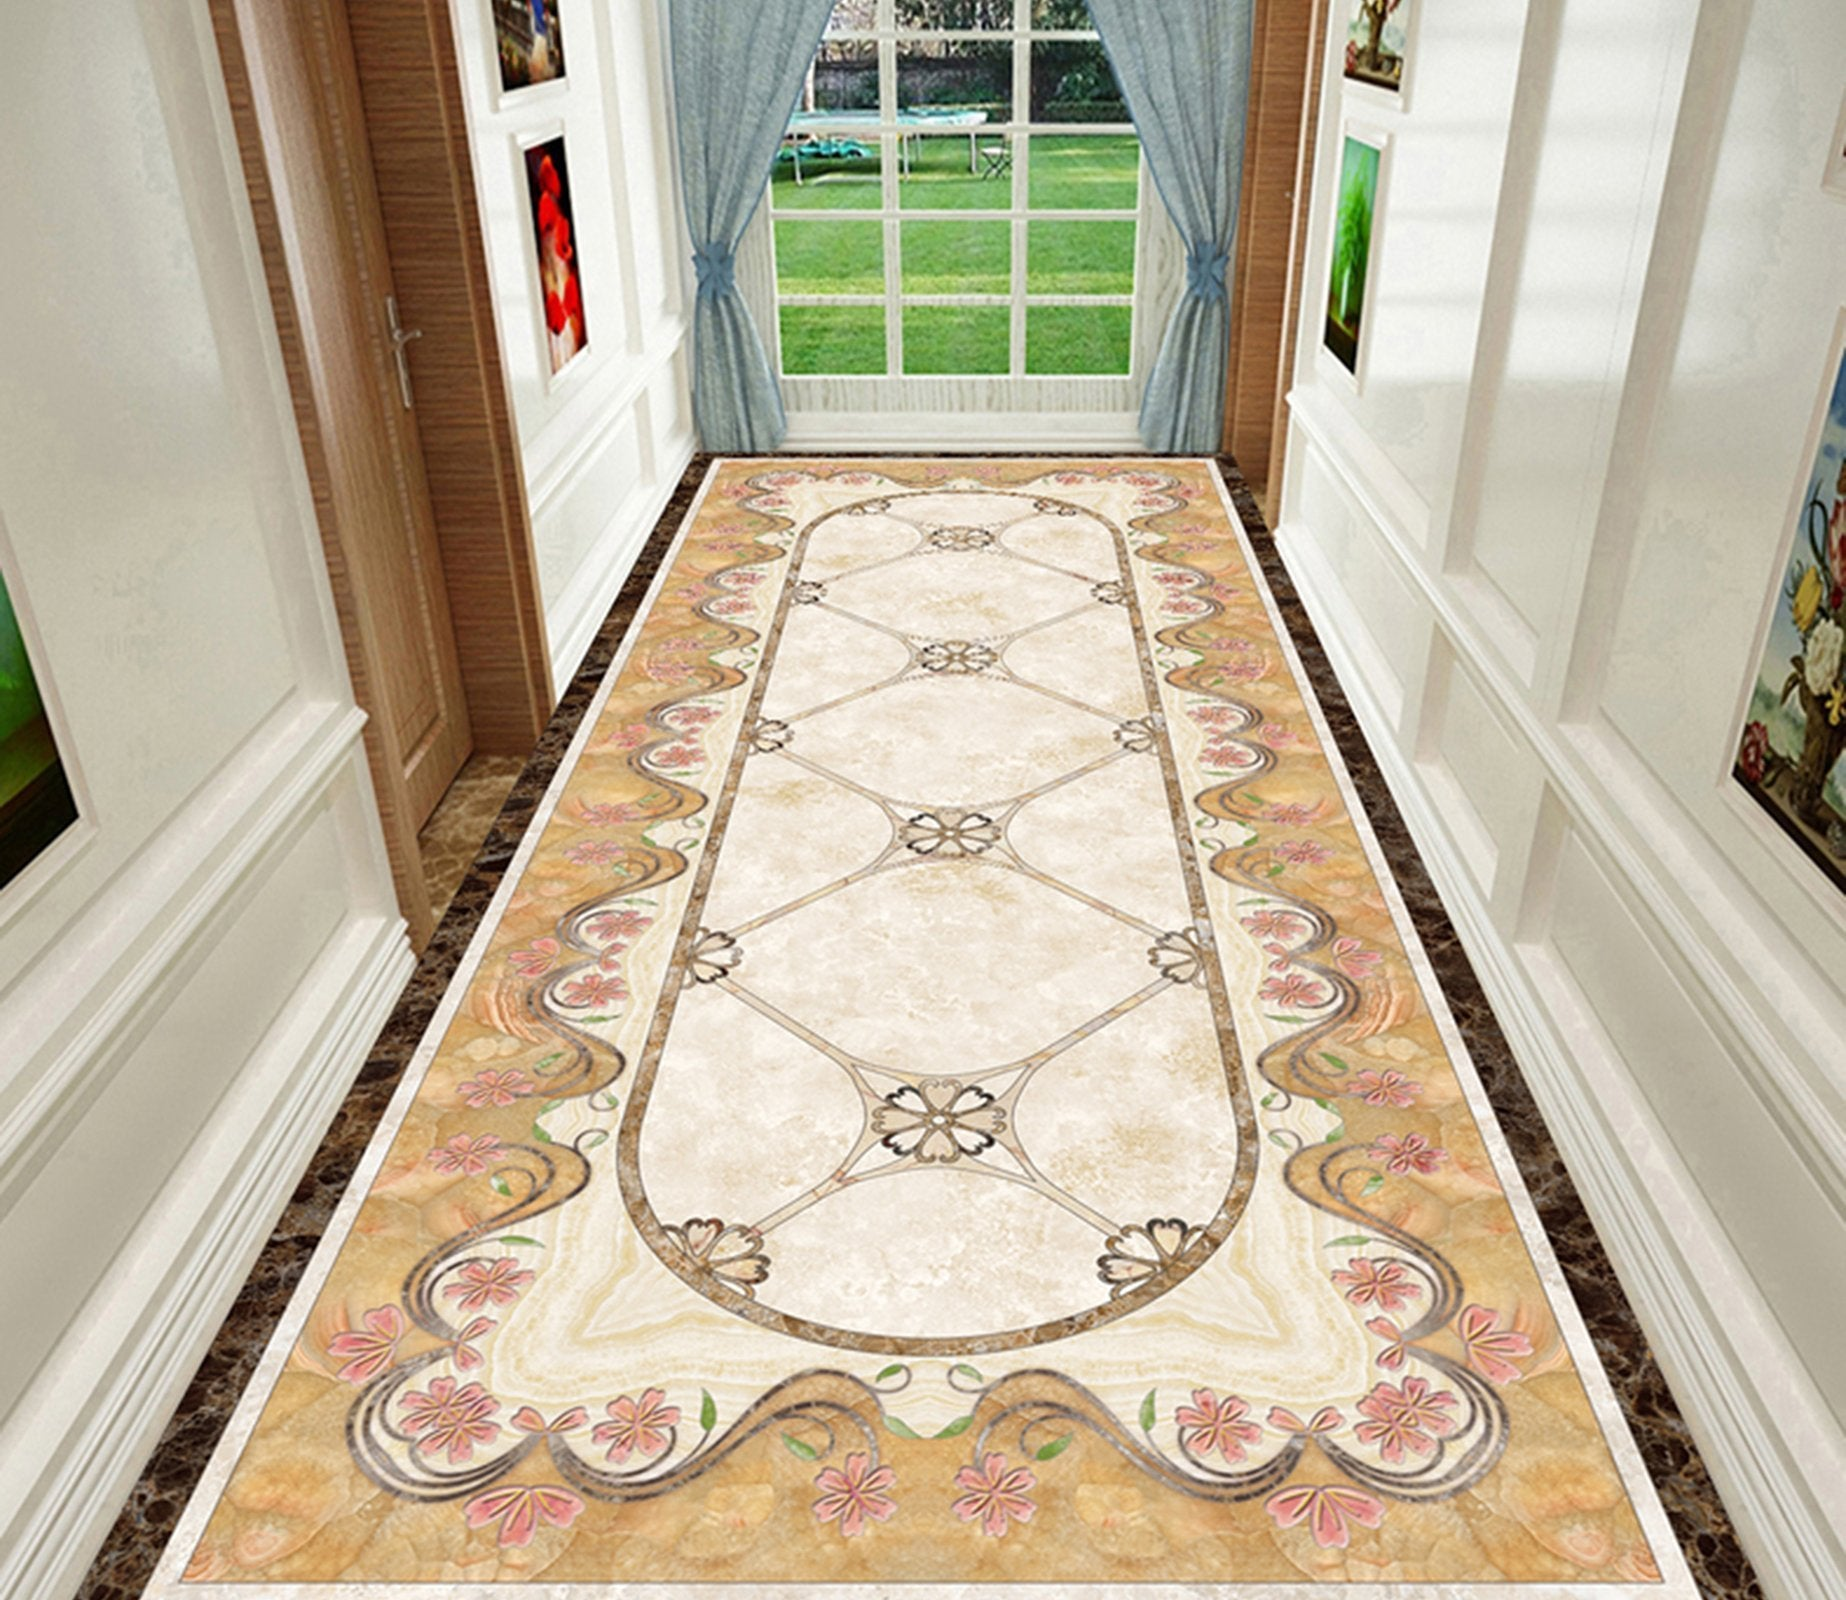 3D Marble Rectangular Lace WG610 Floor Mural